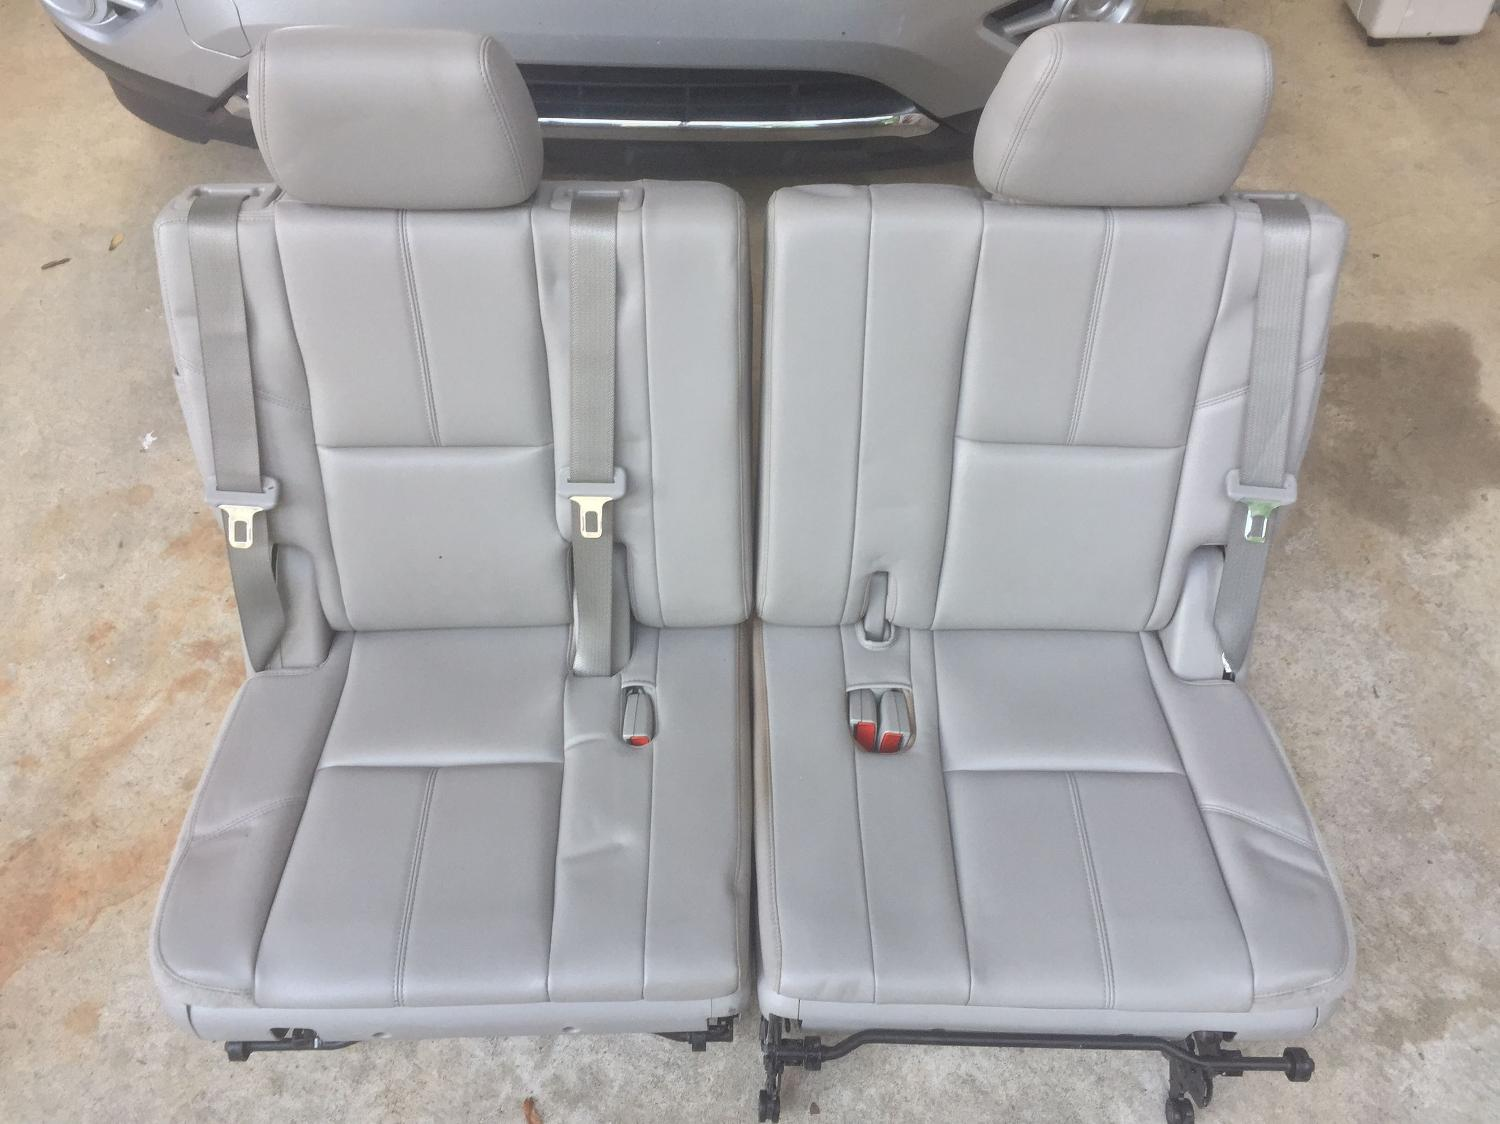 find more 07 14 chevy tahoe suburban gmc yukon third 3rd row seats grey leather for sale at. Black Bedroom Furniture Sets. Home Design Ideas